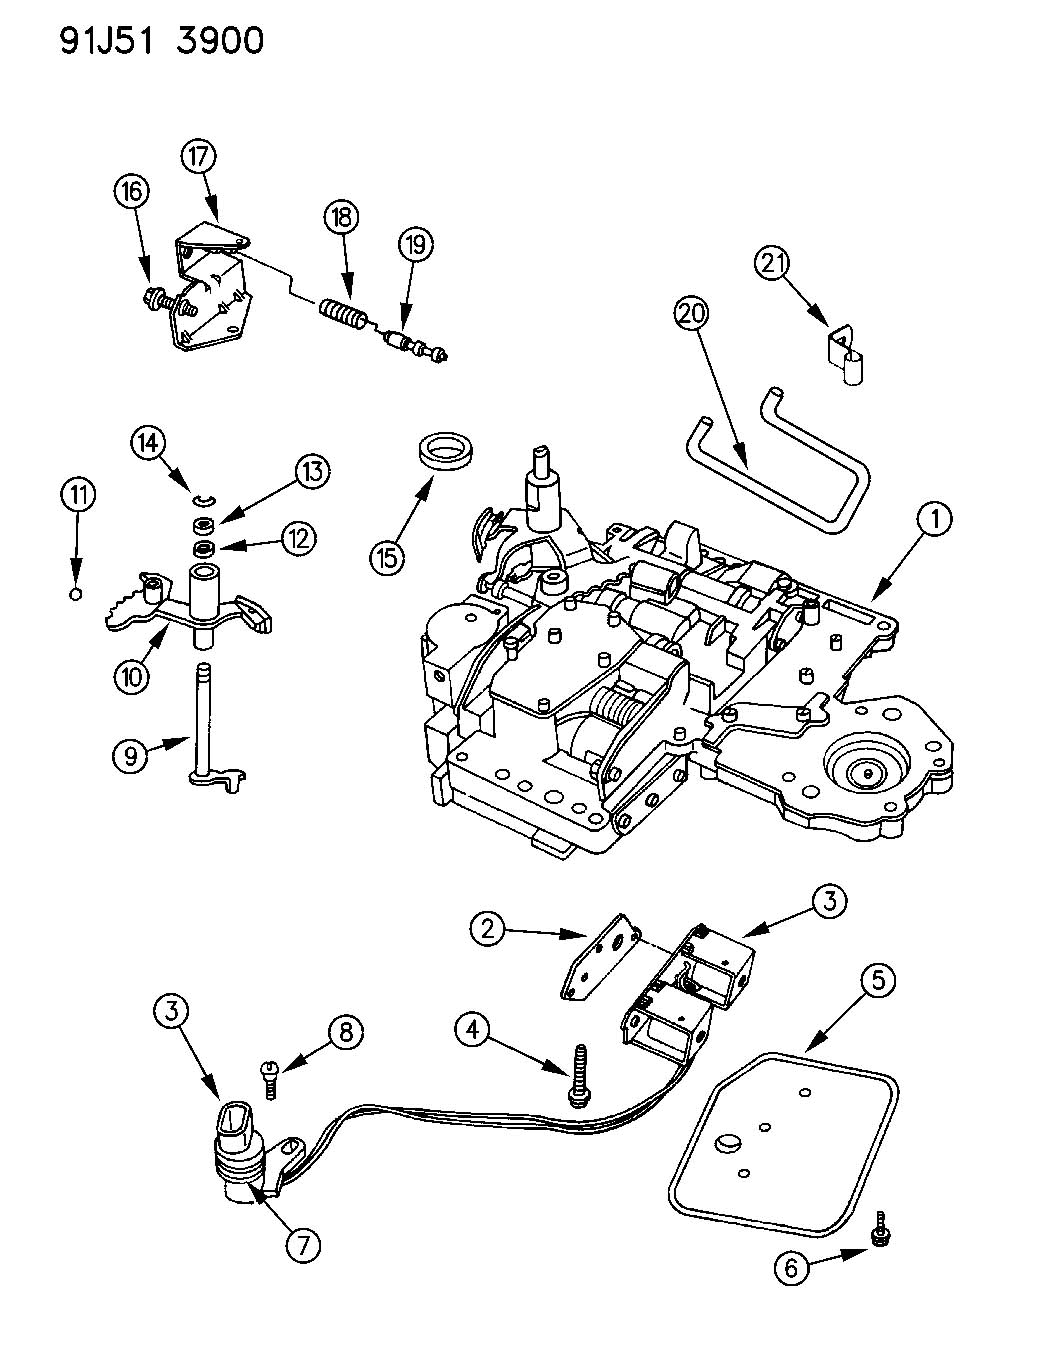 wiring diagram for 2004 jeep wrangler wiring discover your jeep cherokee body diagram dana 60 parts diagram likewise 3 8l v6 supercharged engine